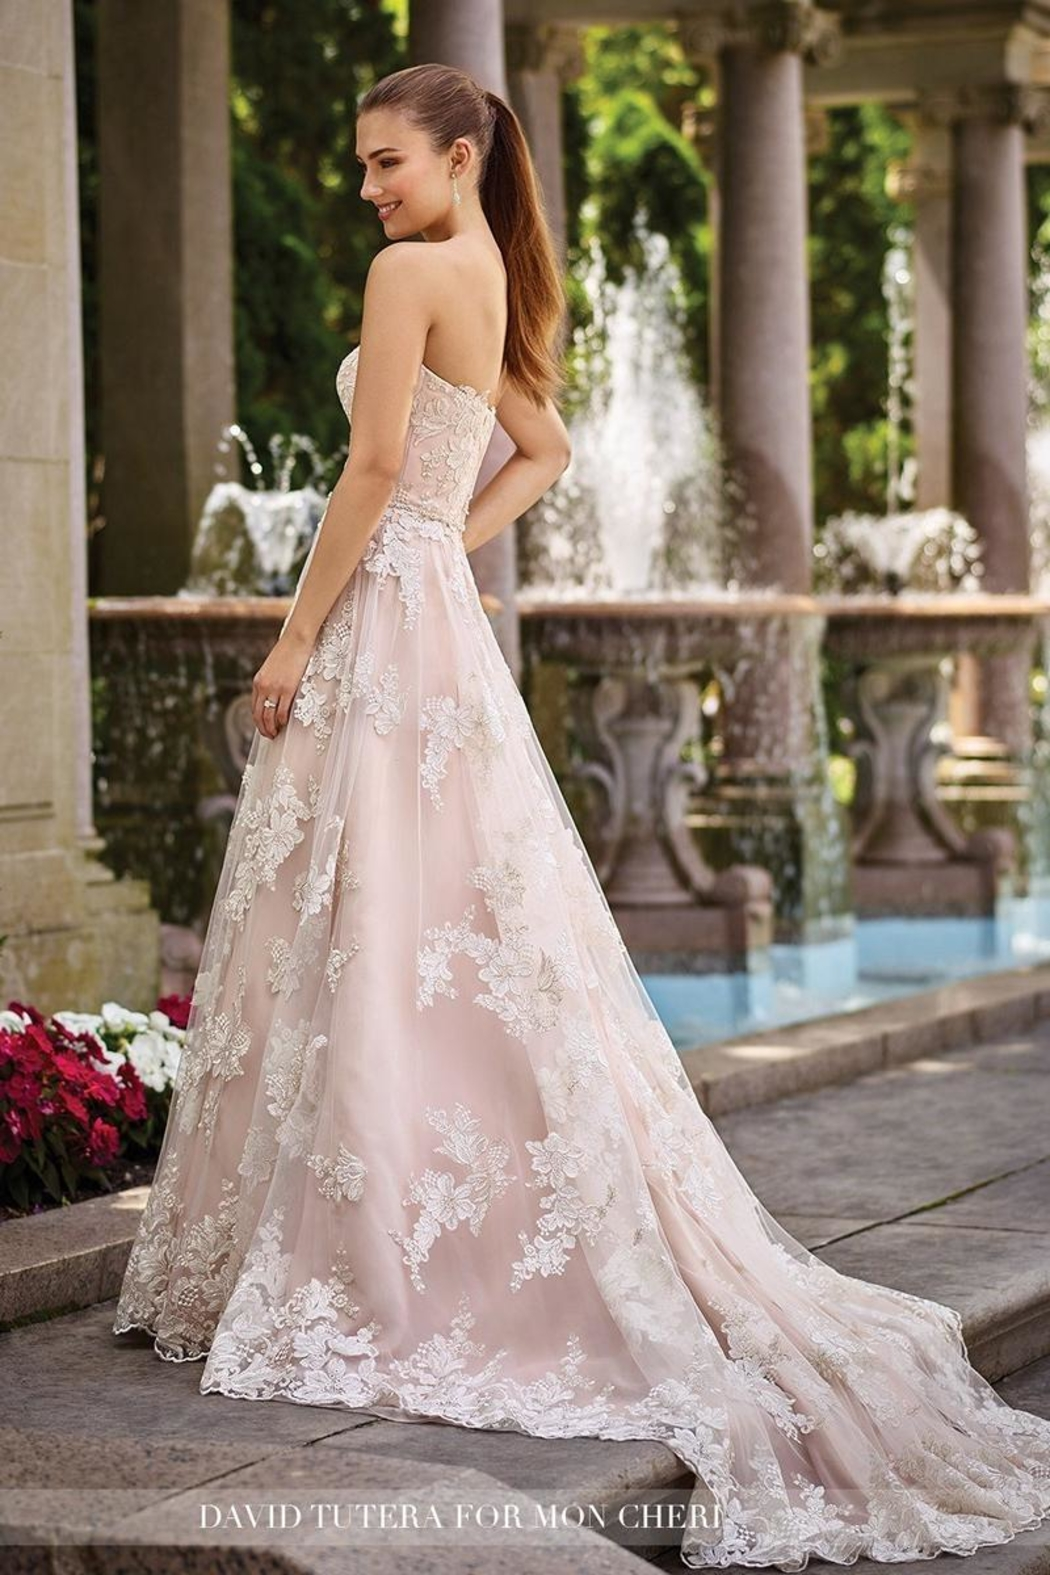 David Tutera for Mon Cheri Lace A-Line Gown - Front Full Image